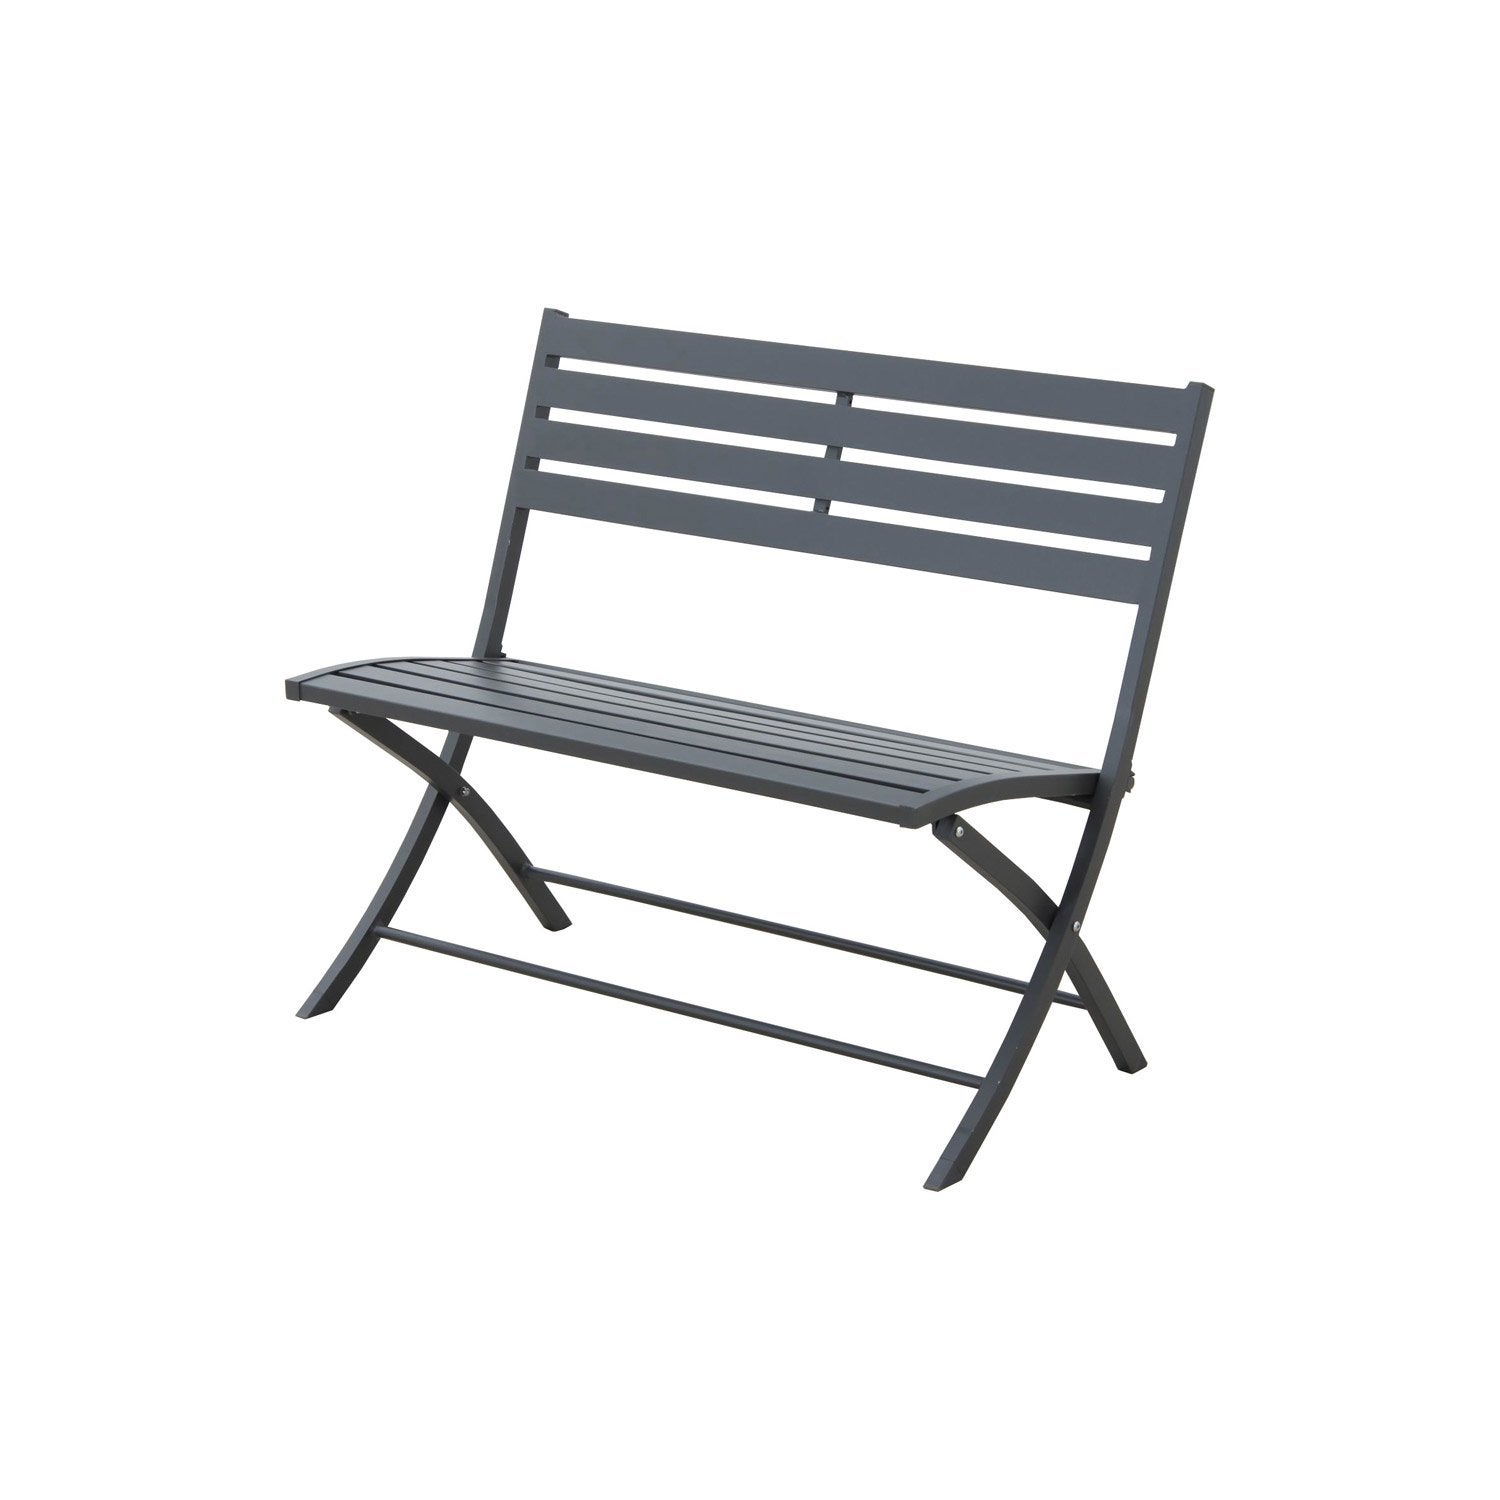 banc 2 places de jardin en aluminium marius gris leroy merlin. Black Bedroom Furniture Sets. Home Design Ideas